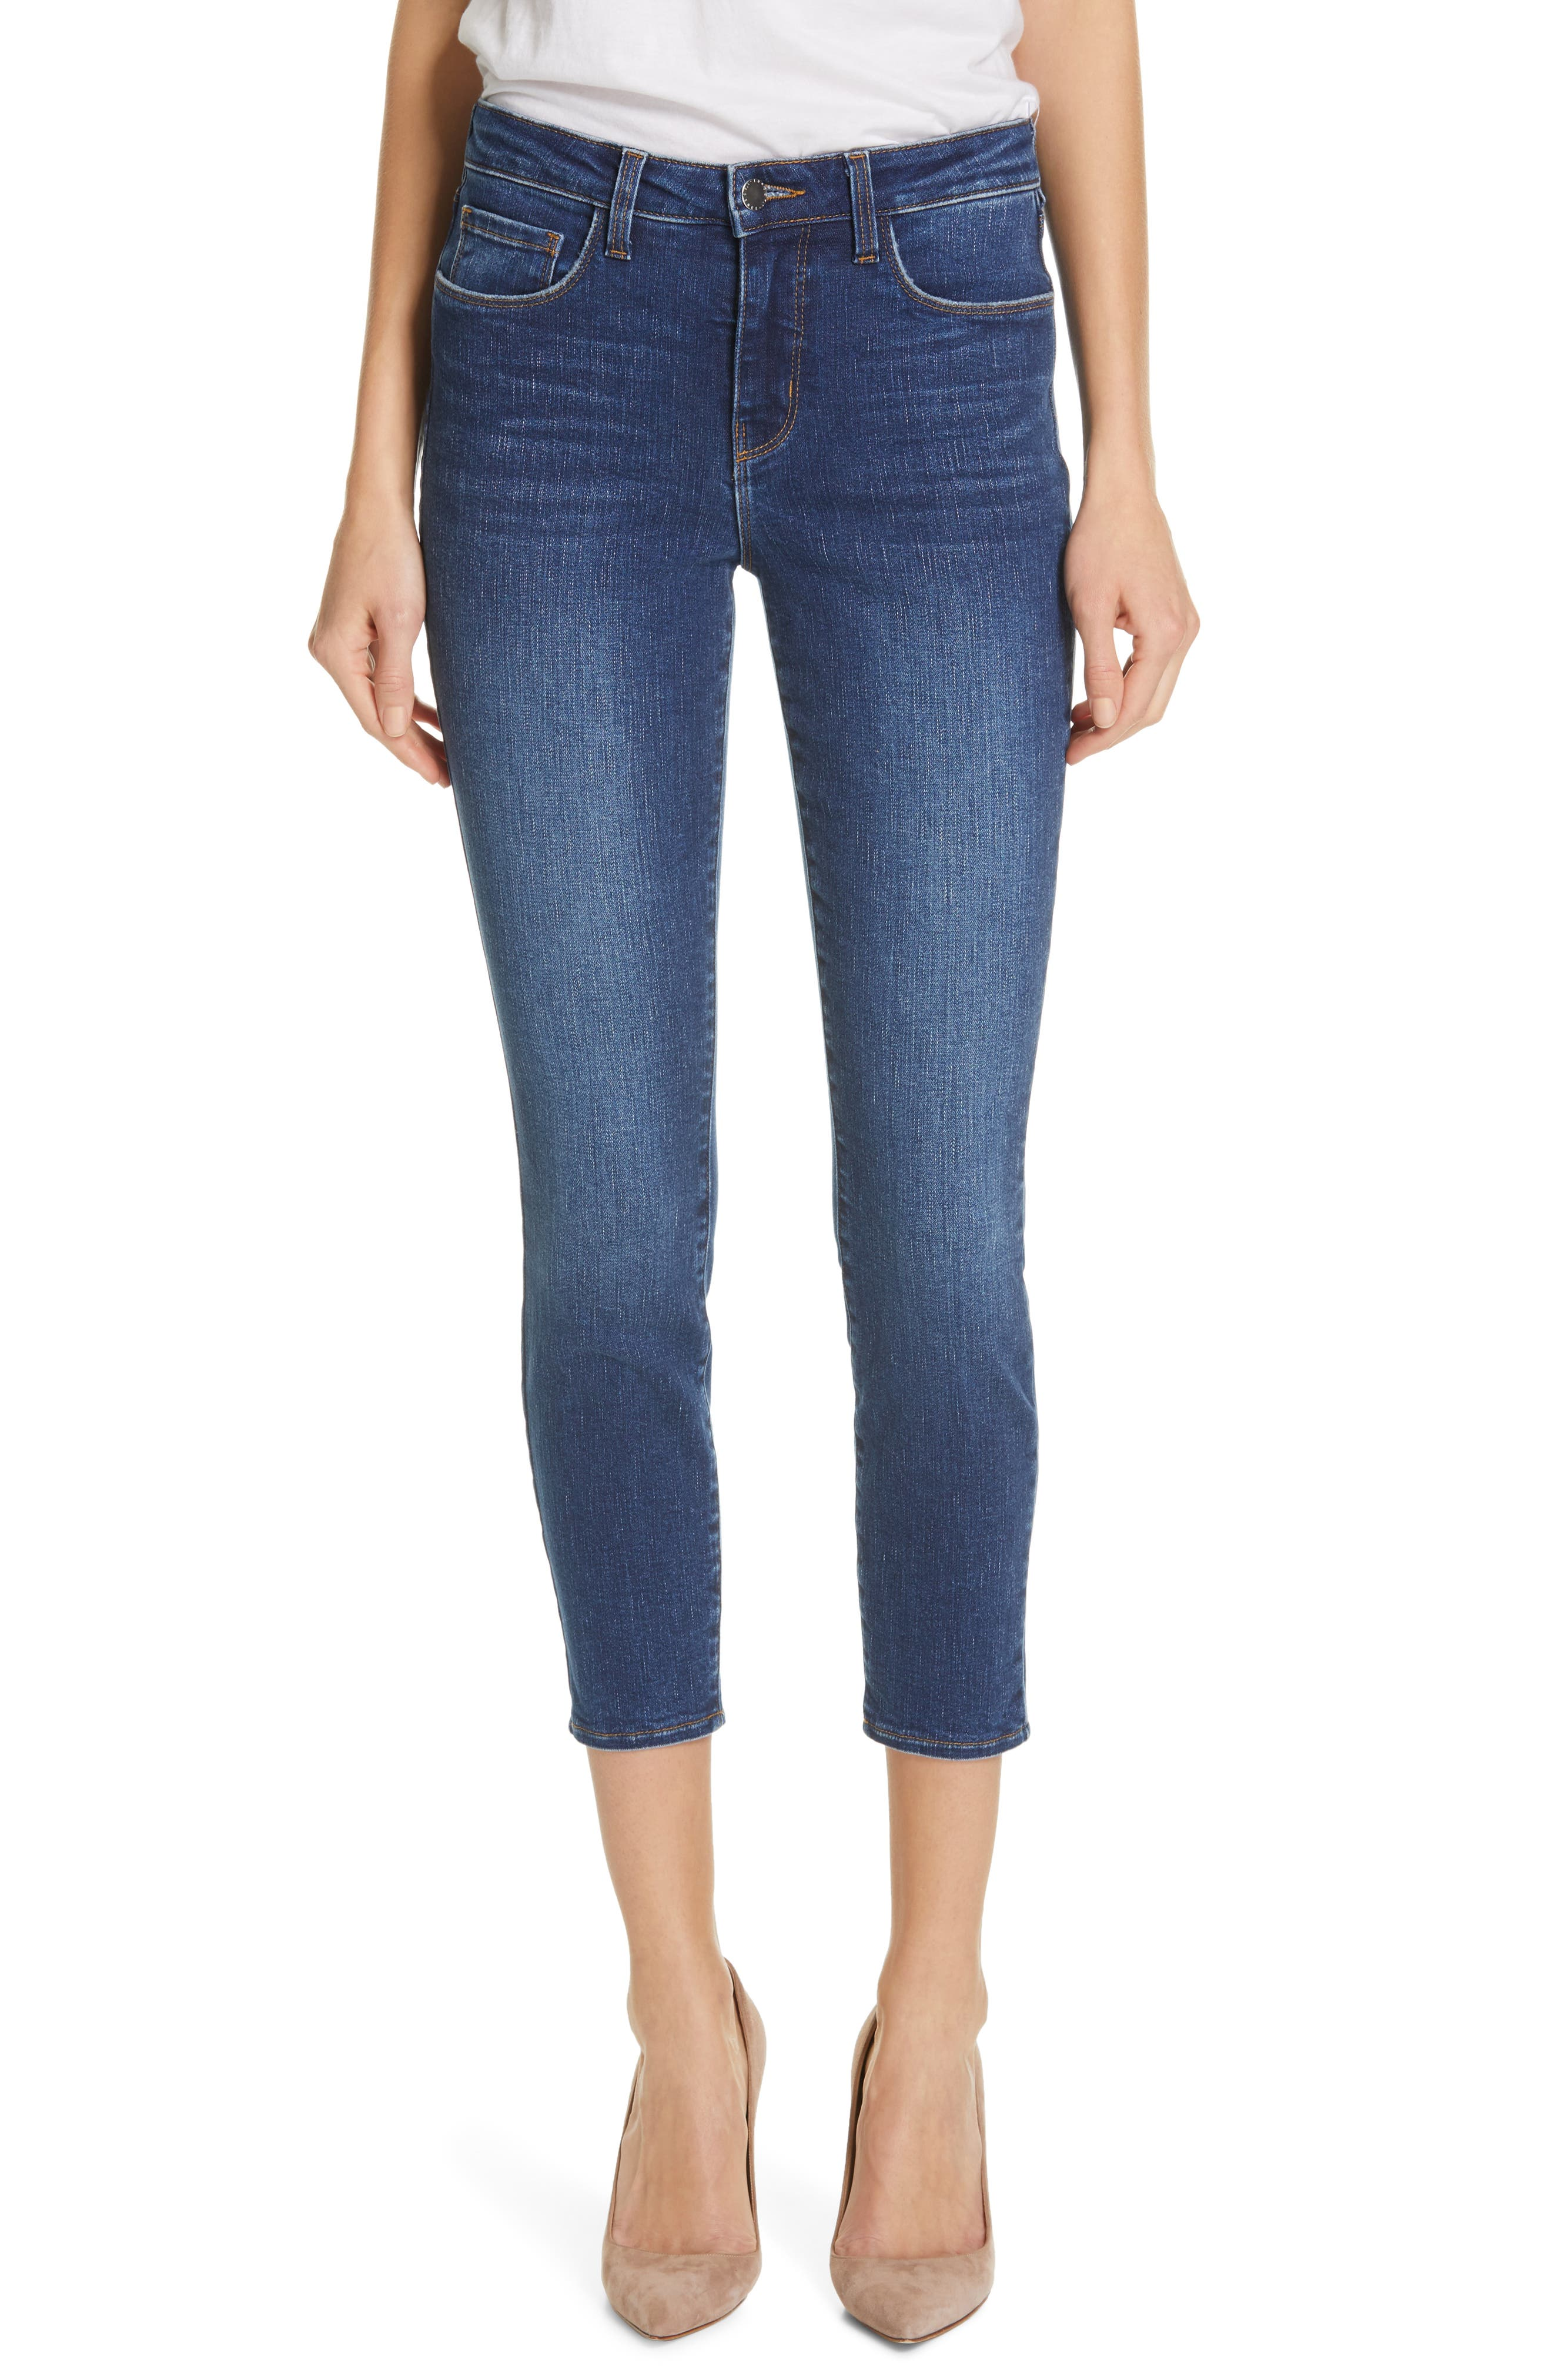 L'AGENCE, Margot Crop Skinny Jeans, Main thumbnail 1, color, TUSCAN